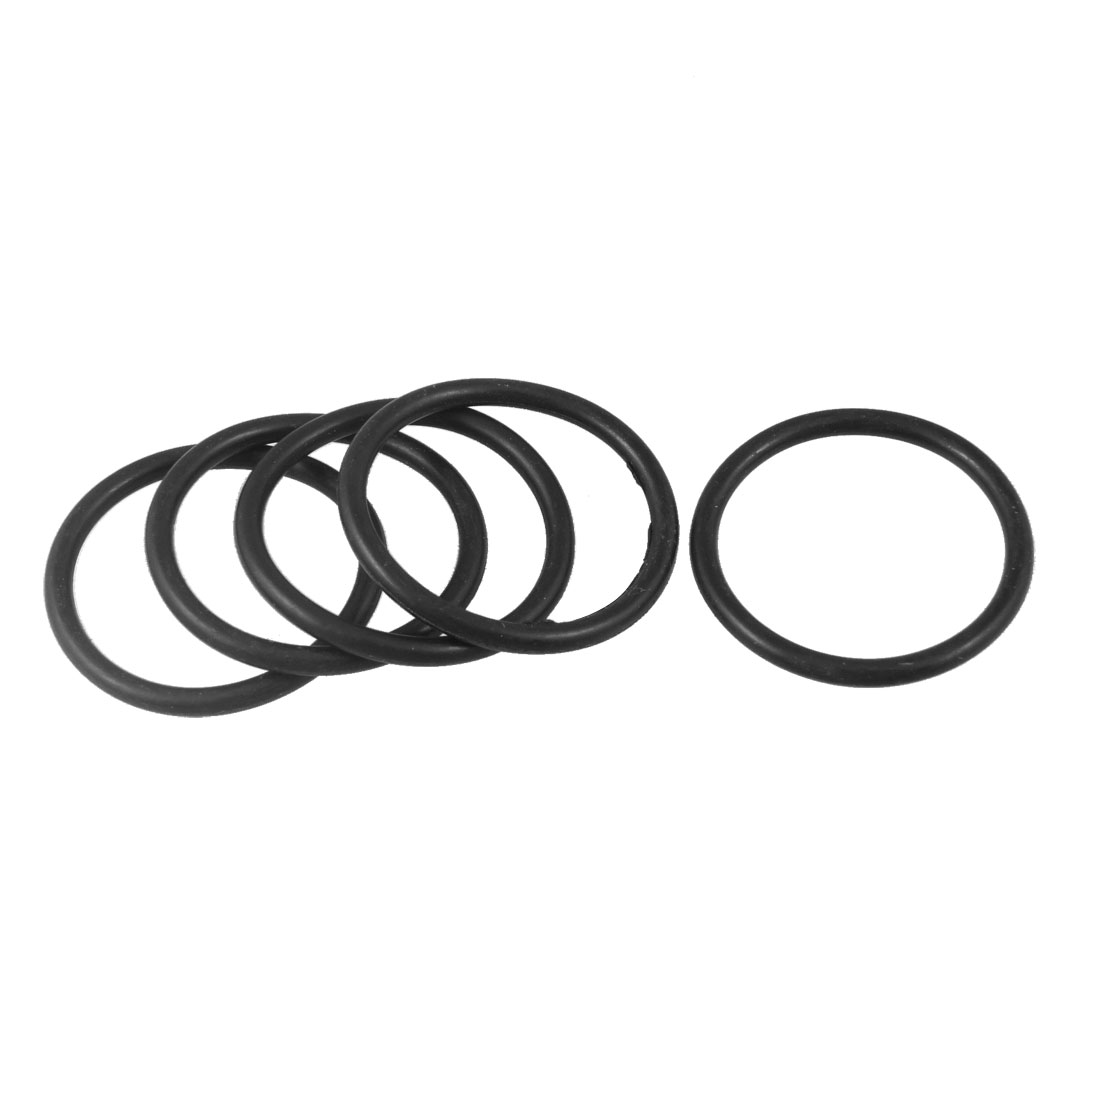 42mm x 3.5mm x 35mm Rubber Sealing Oil Filter O Rings Gaskets 5 Pcs